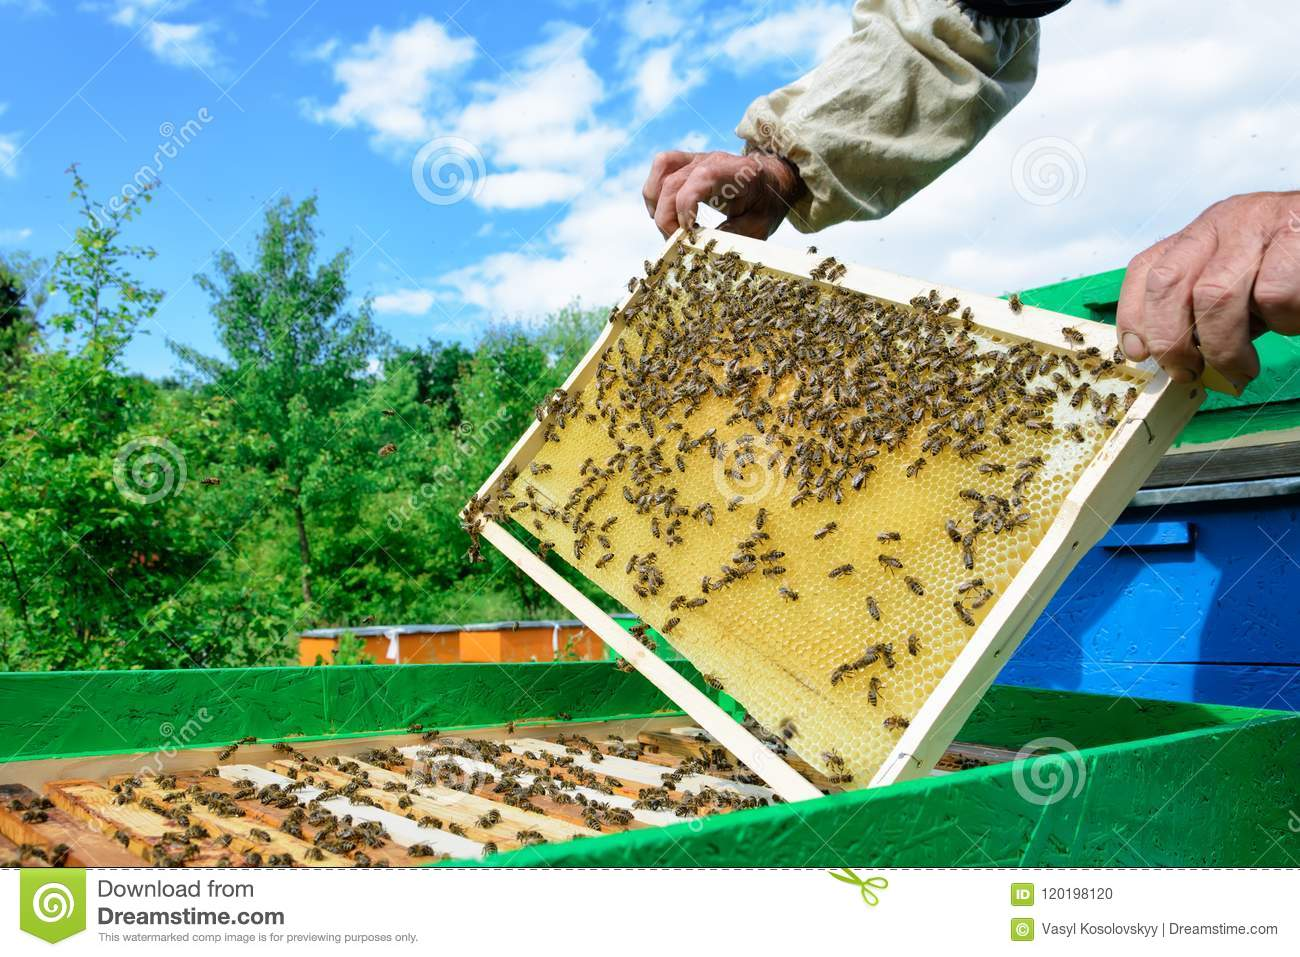 Beekeeper holding a honeycomb full of bees. Beekeeper inspecting honeycomb frame at apiary. Beekeeping concept.